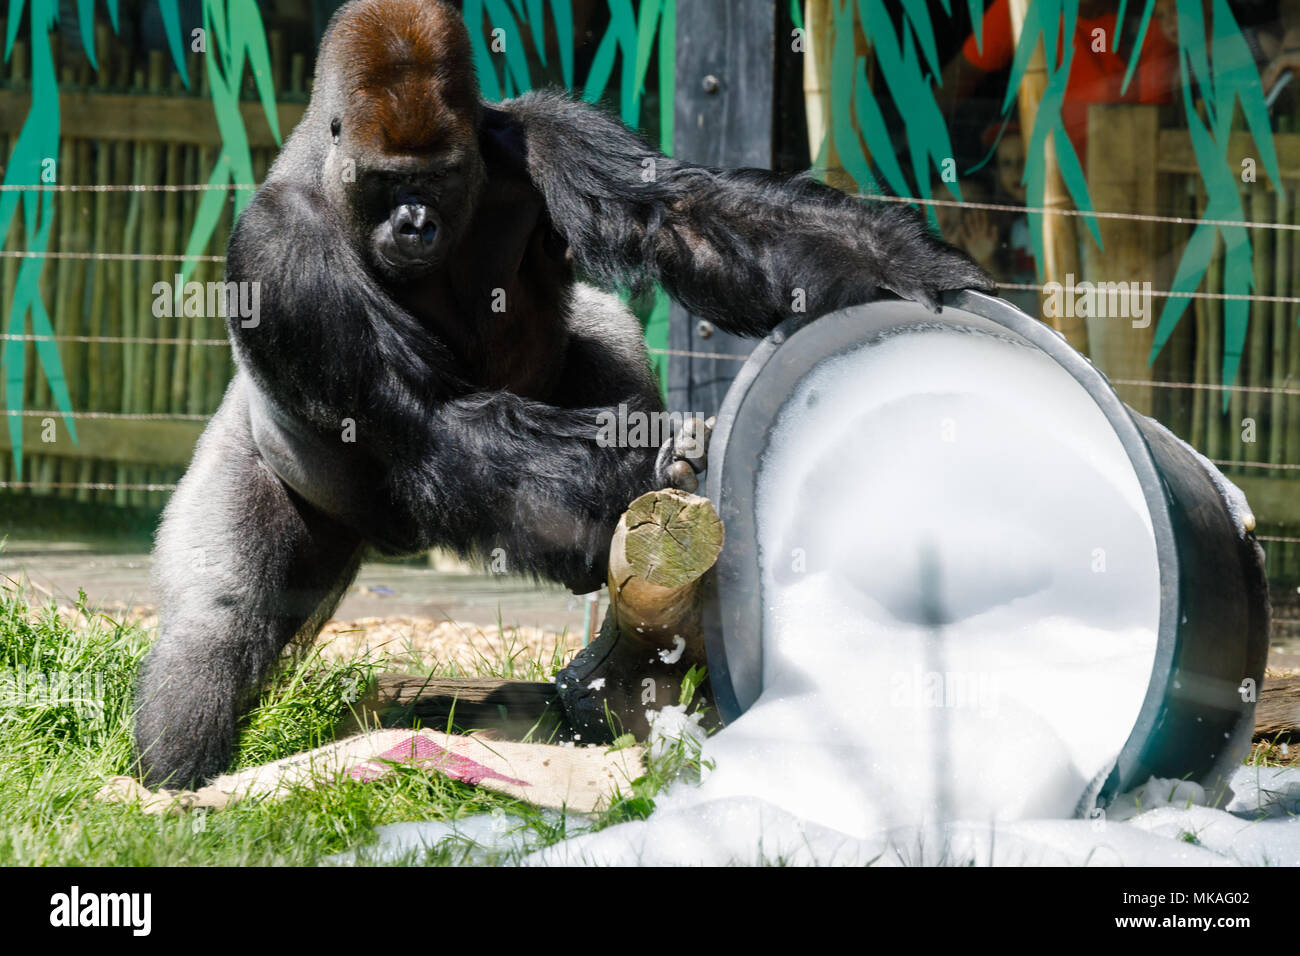 London, UK. 7th May, 2018. Western lowland gorillas having fun in